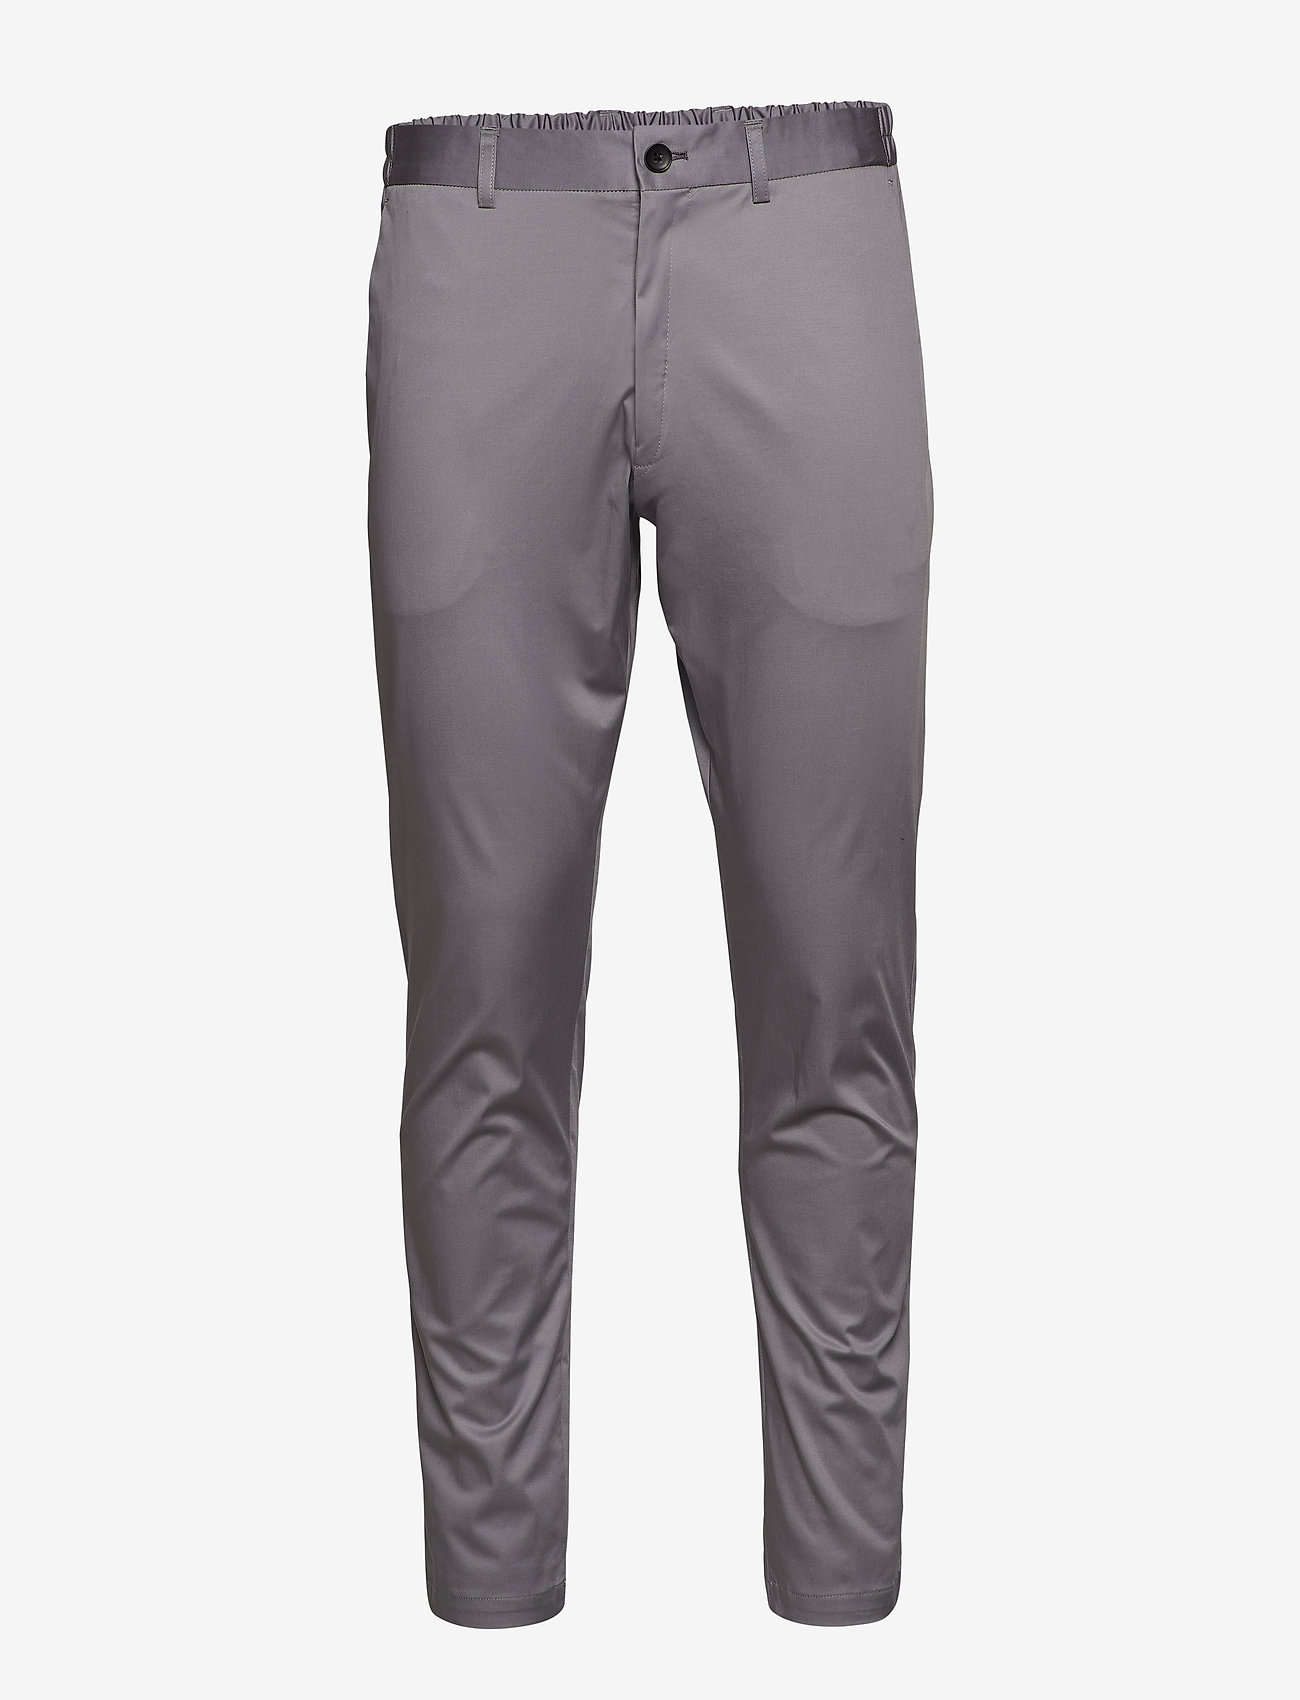 Esprit Collection - Pants suit - formele broeken - grey - 0